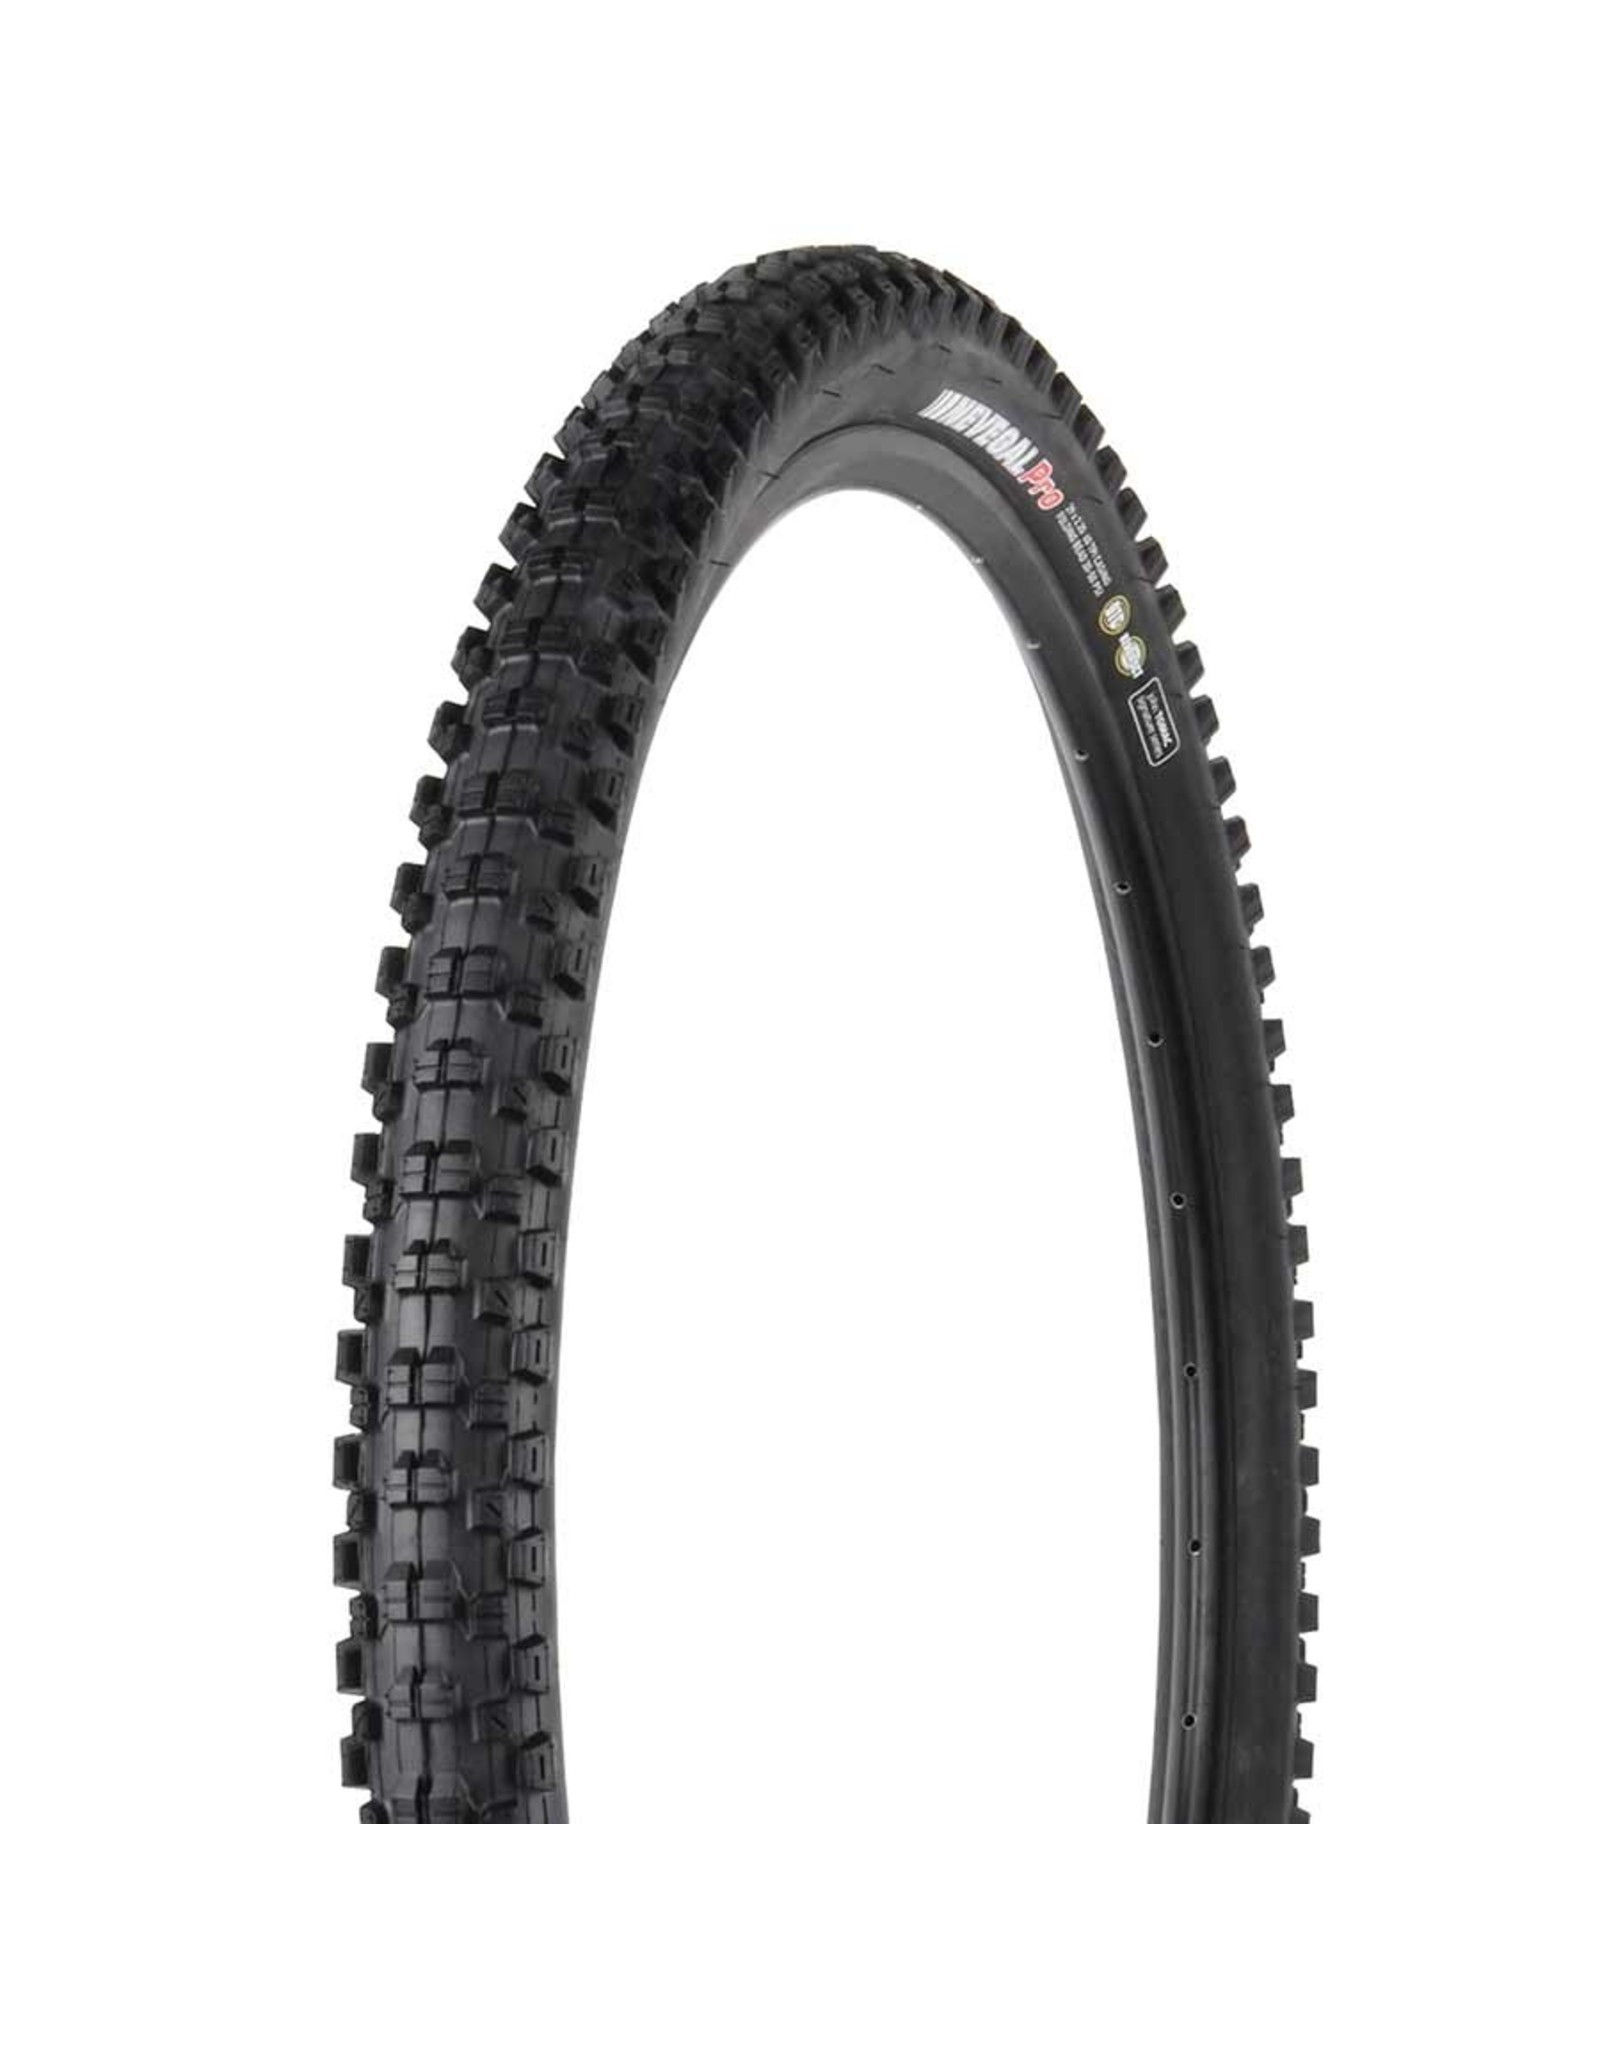 Kenda Kenda, Nevegal, Tire, 27.5''x2.35, Folding, Clincher, DTC, 120TPI, Black